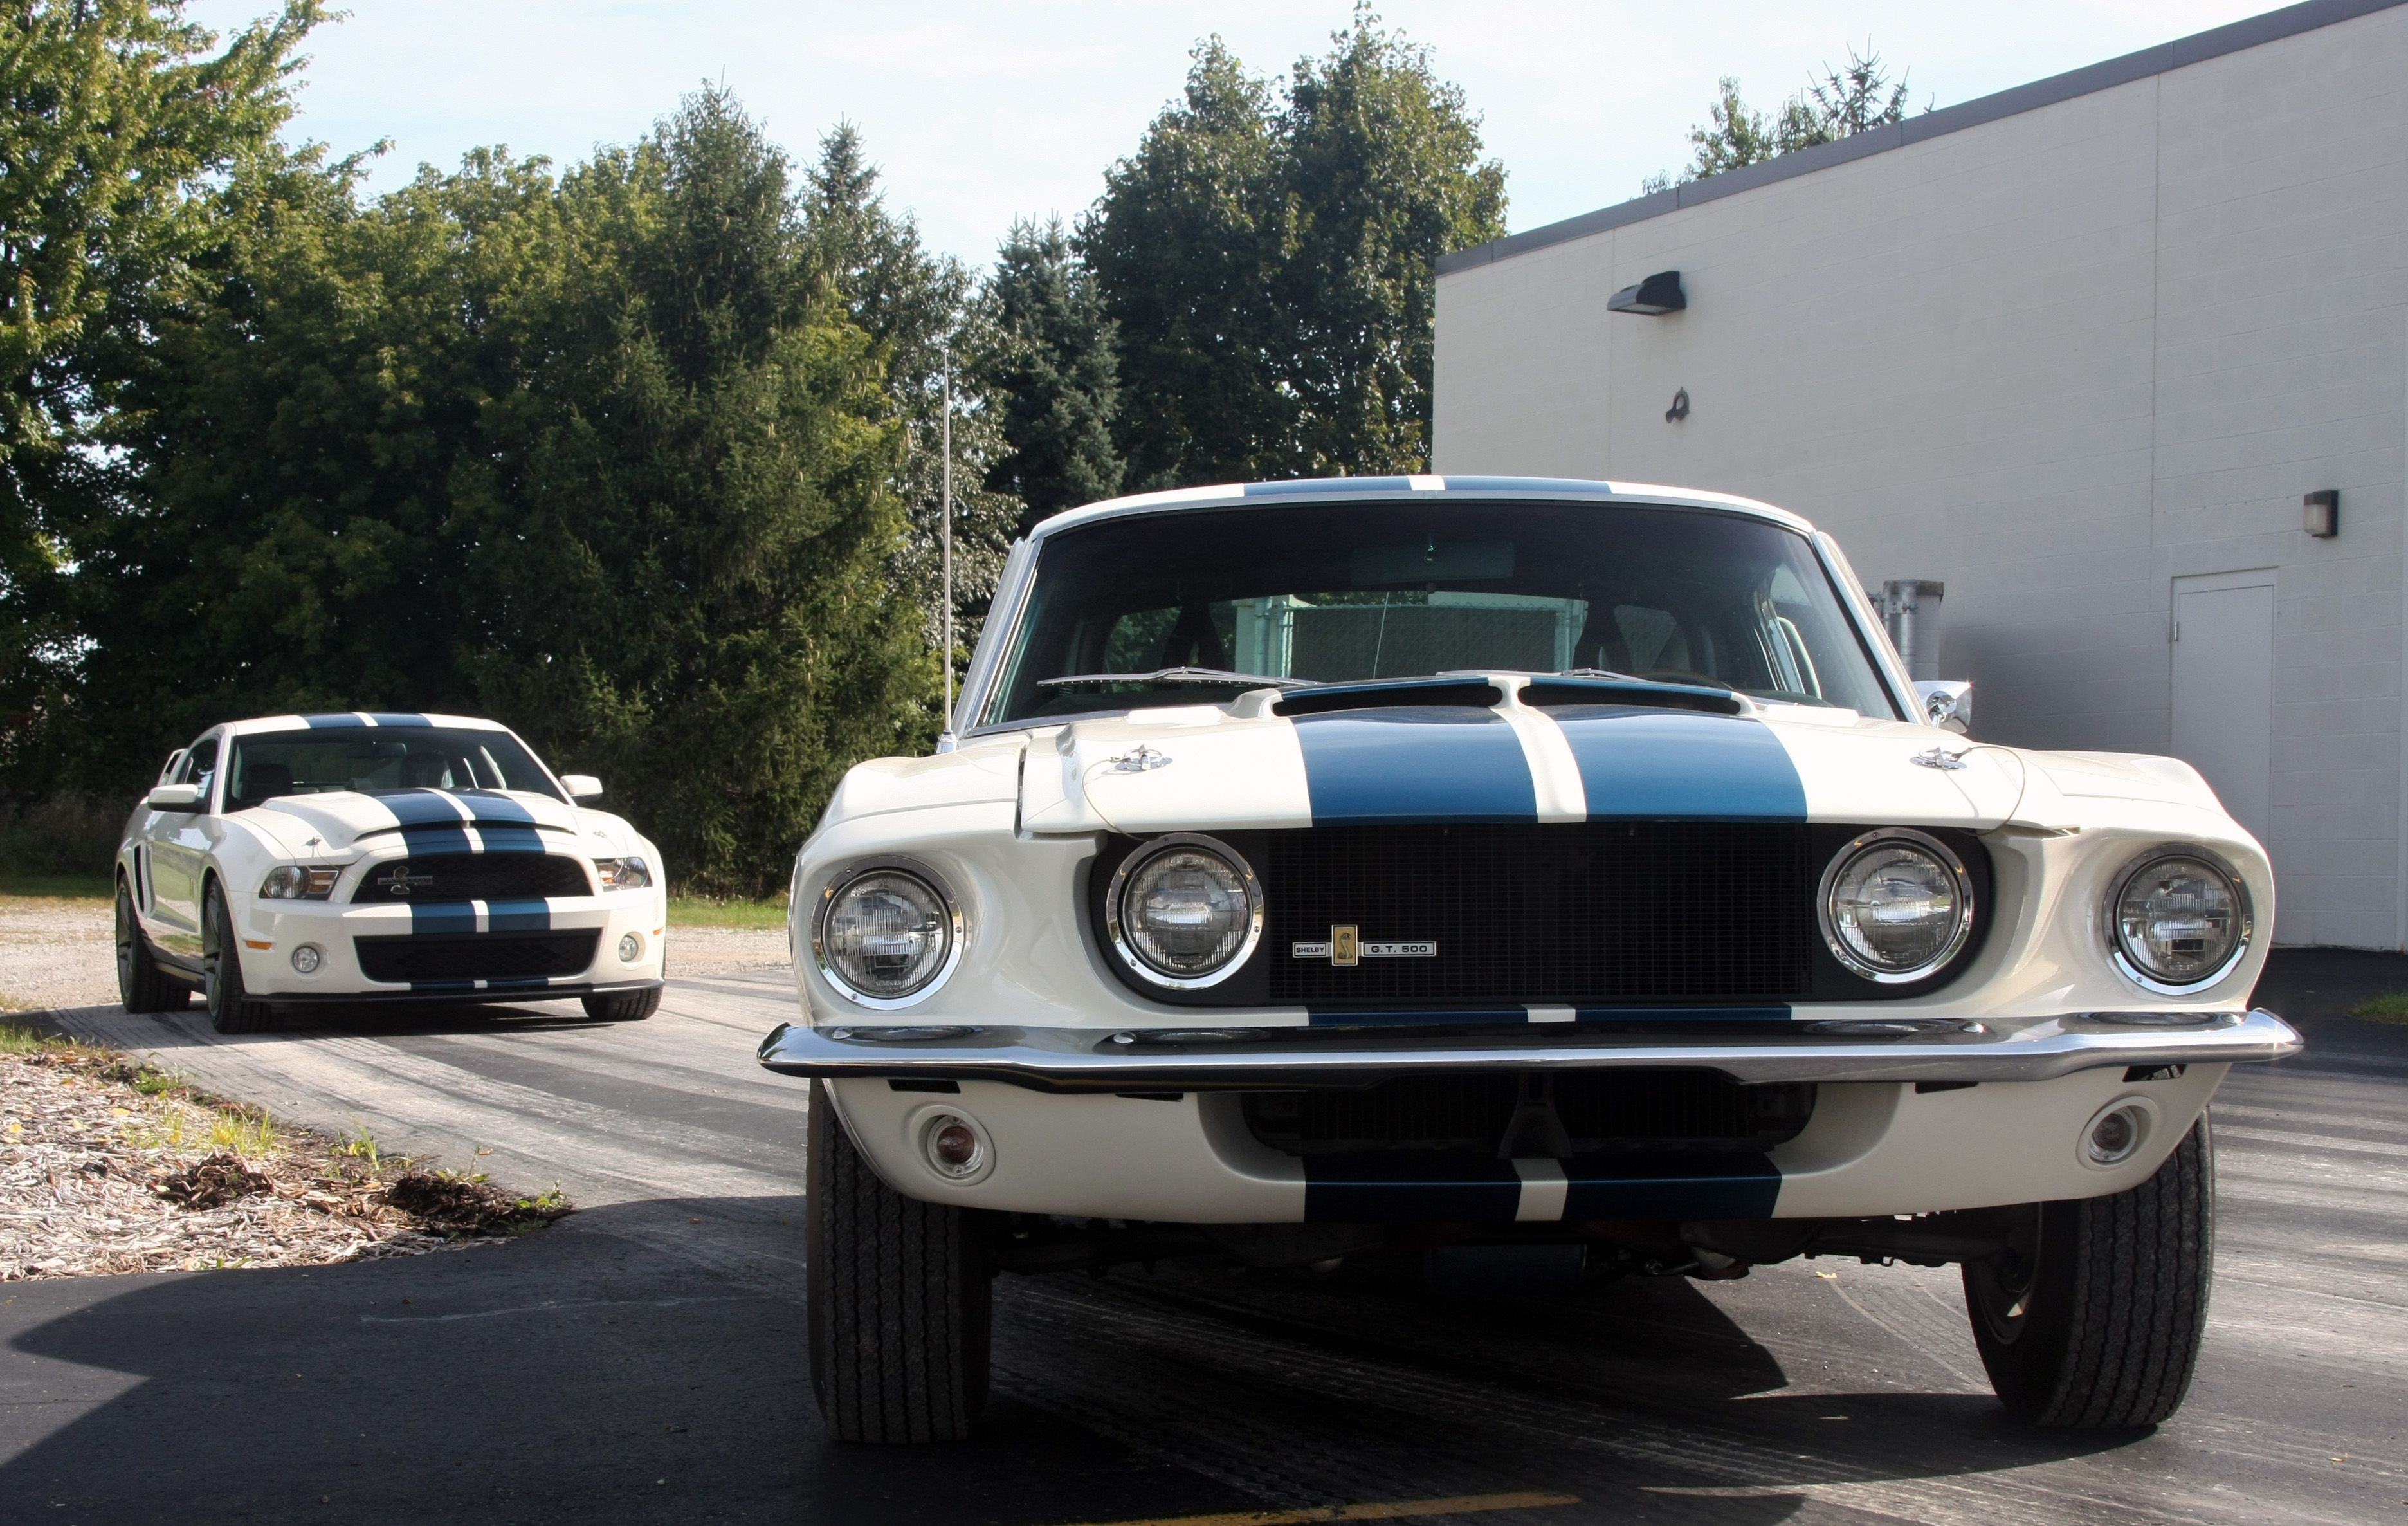 67 Shelby Gt500 Vs New Shelby Gt500 With Images Classic Cars Muscle Mustang Ford Mustang Gt500